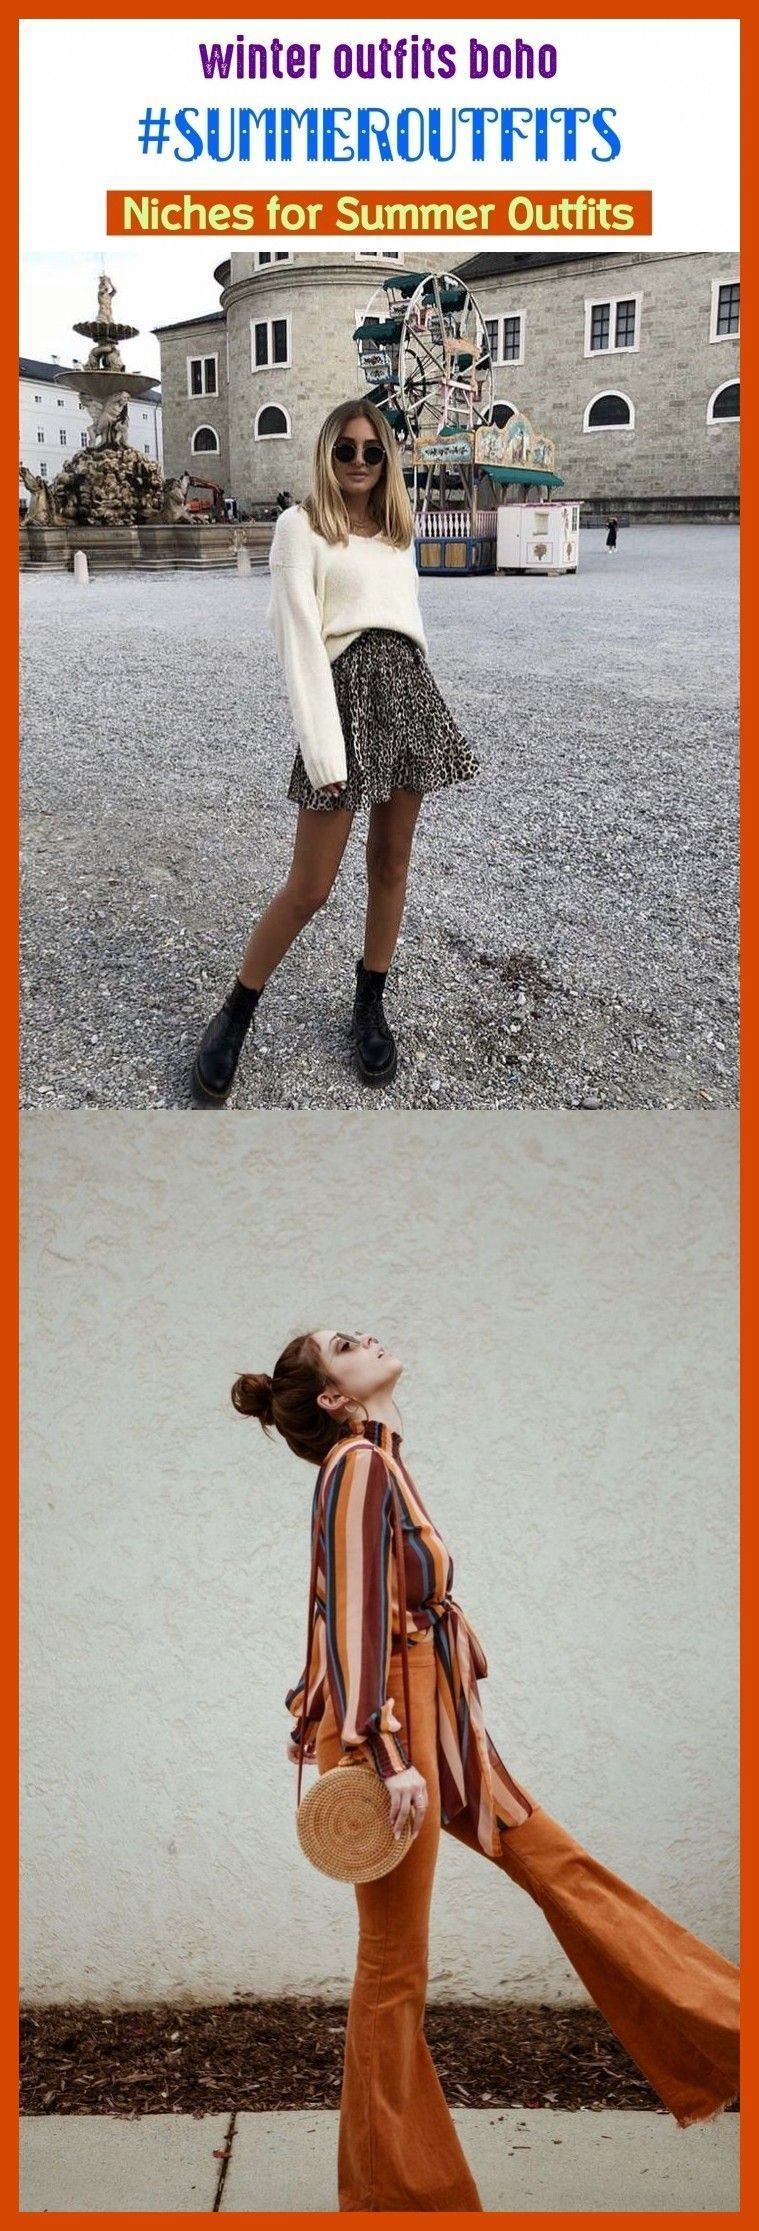 Winter outfits boho #summeroutfits #seoforpinterest #seo #trending. winter outfits casual, winter outfits for teen girls, winter outfits for work, winter outfits vrouw, winter outfits cold, winter outfits dressy, winter outfits for school, winter outfits for going out, winter outfits women, winter outfits edgy, winter outfits plus size, winter outfits blackgirl, winter outfits warm, fall winter outfits, winter outfits baddie, cute winter outfits, winter outfits . #plus size winter outfits boho # #winteroutfitscold